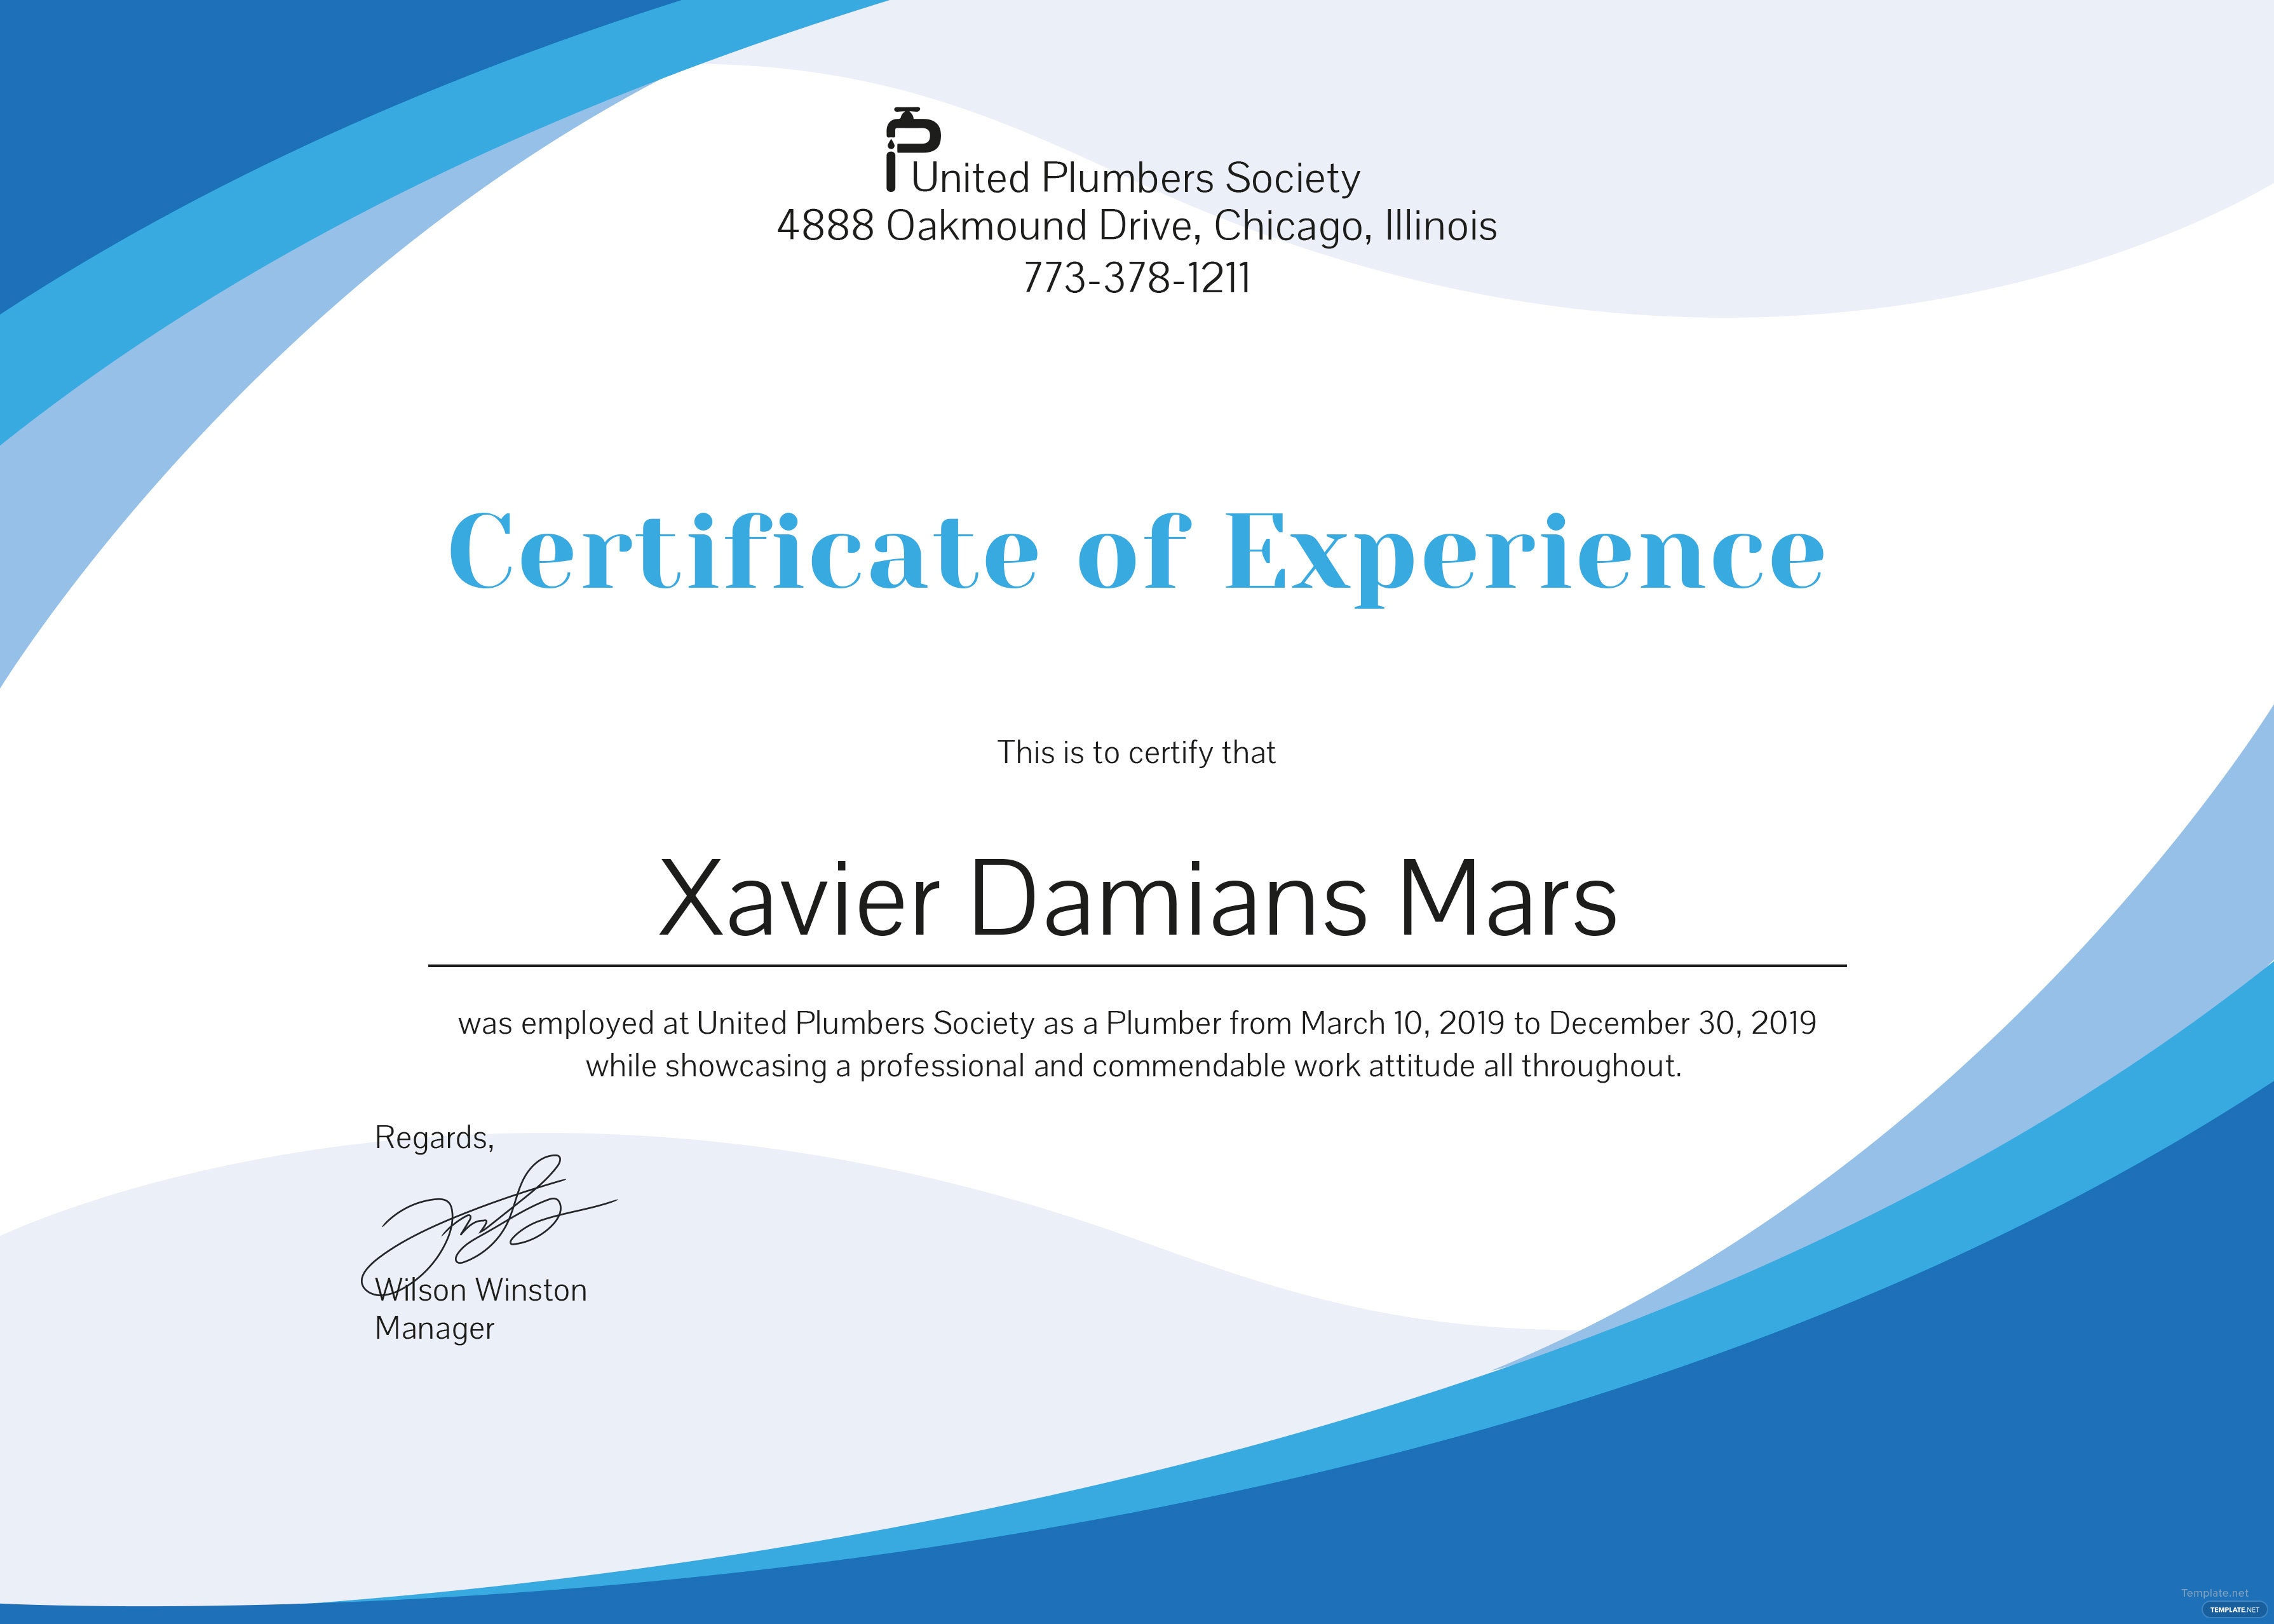 Free plumbing experience certificate template in psd ms for Work certificate template word